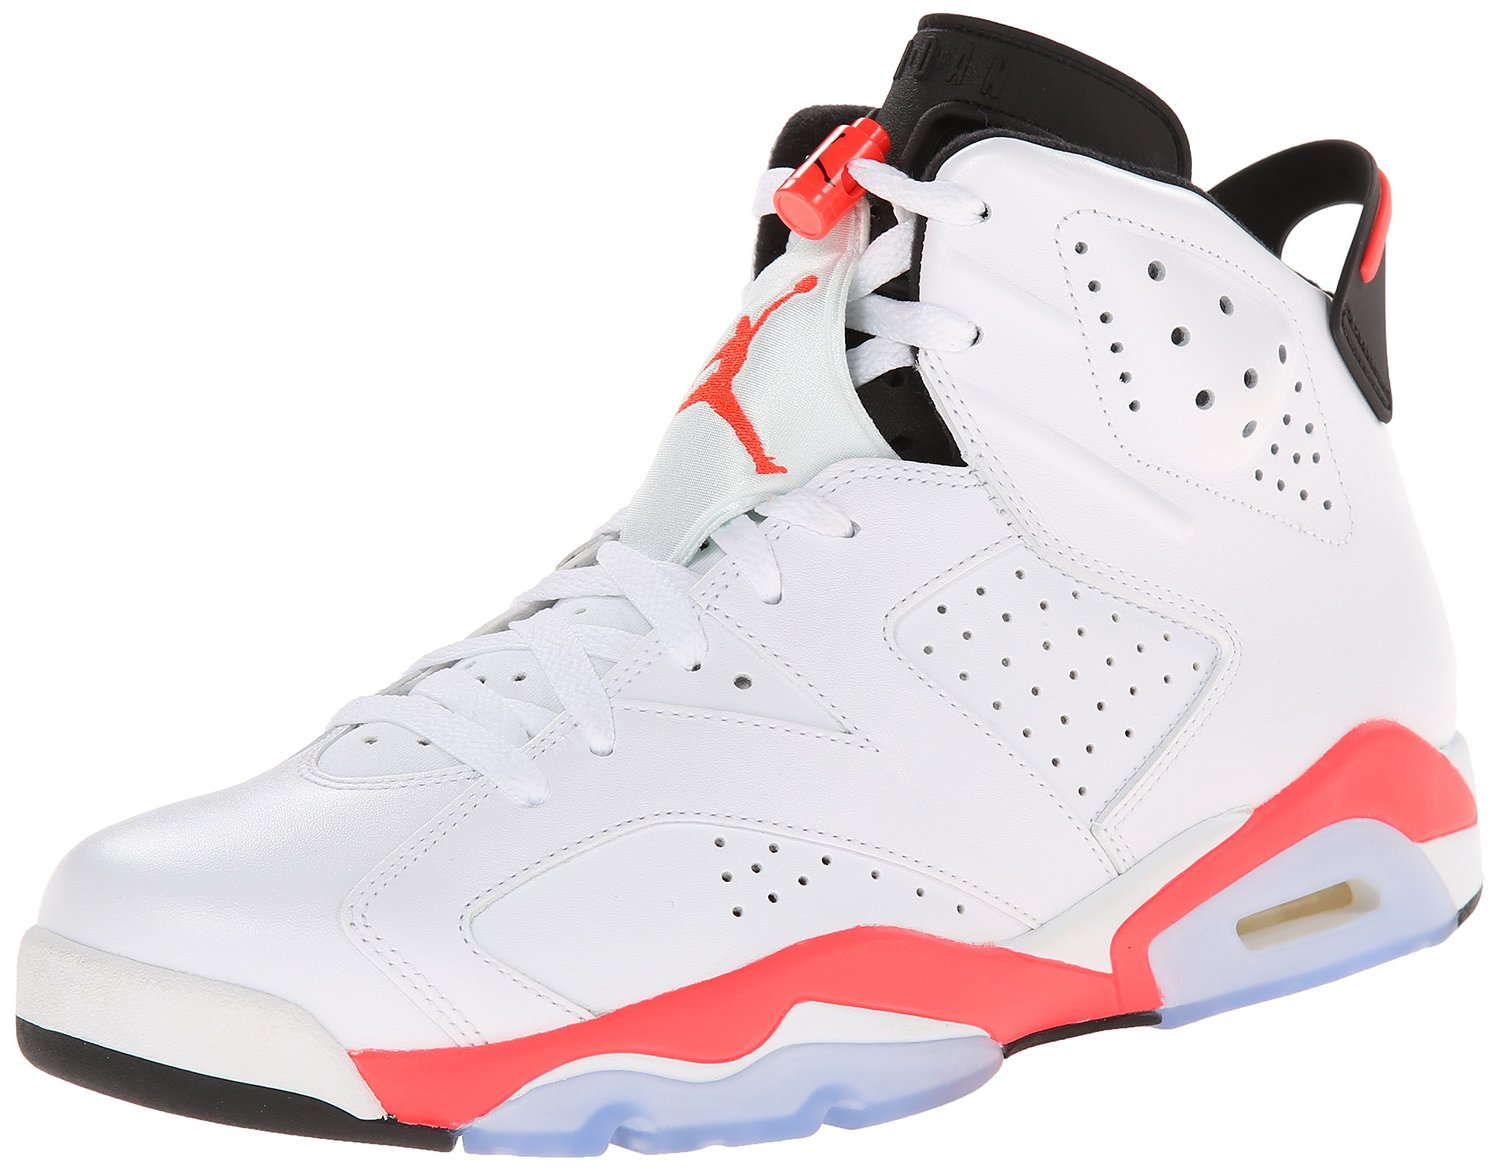 check out f6325 7b017 Buy Nike Mens Air Jordan 6 Retro White Infrared-Black Leather Basketball  Shoes Size 13 in Cheap Price on m.alibaba.com